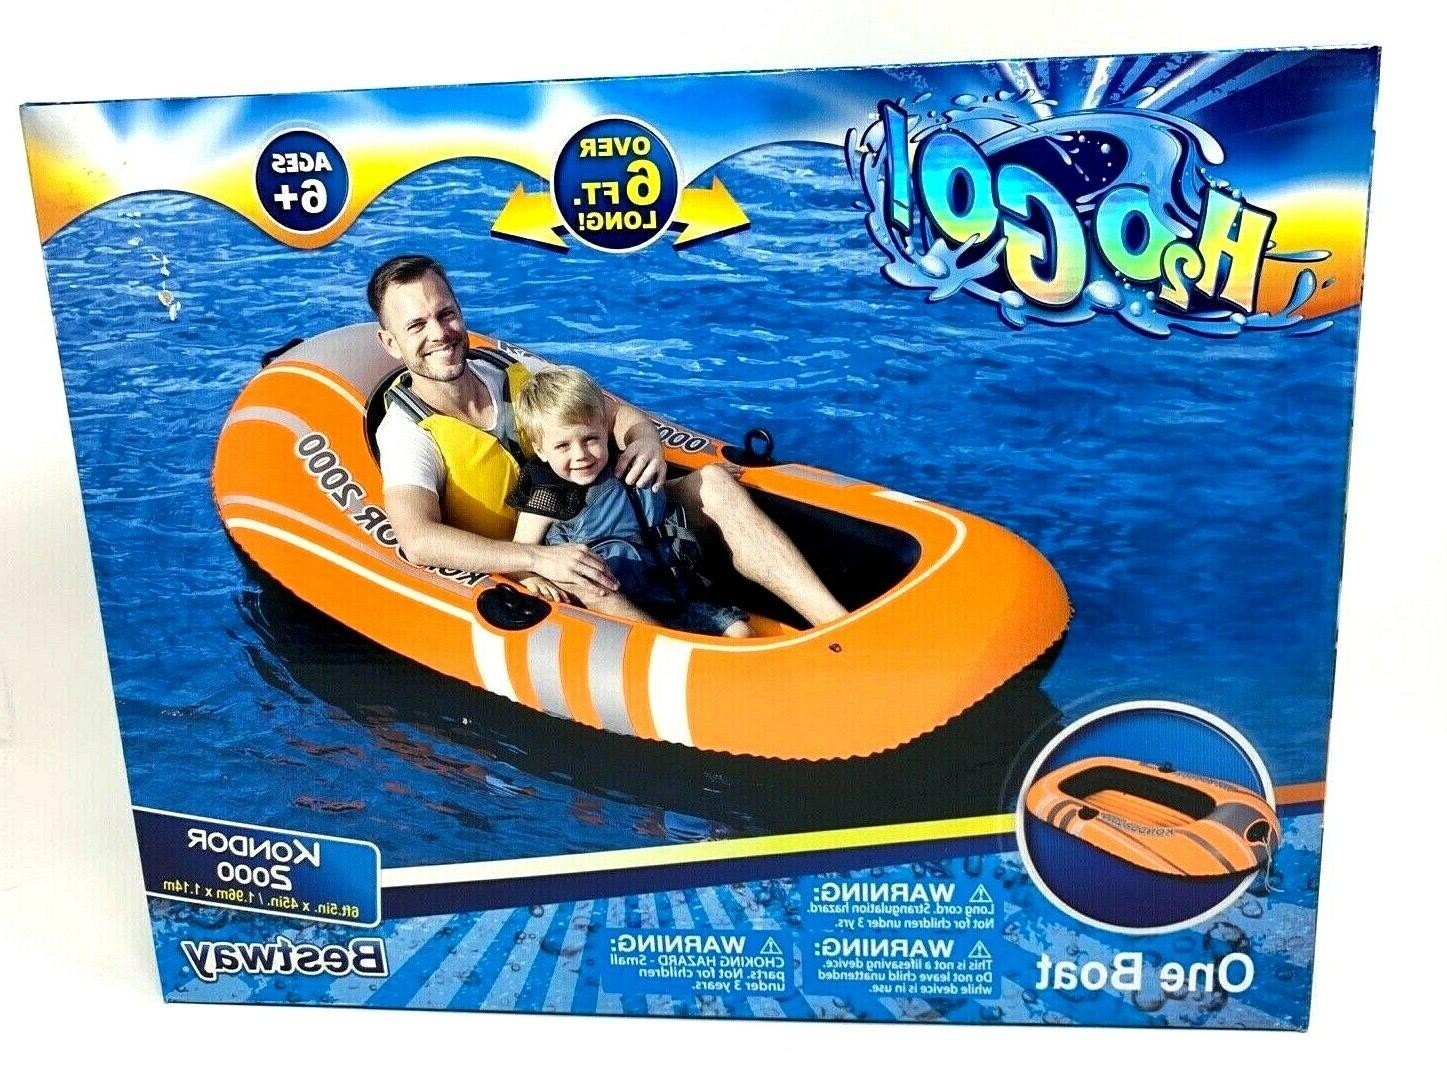 Bestway 2000 Person Inflatable Raft Over 6ft